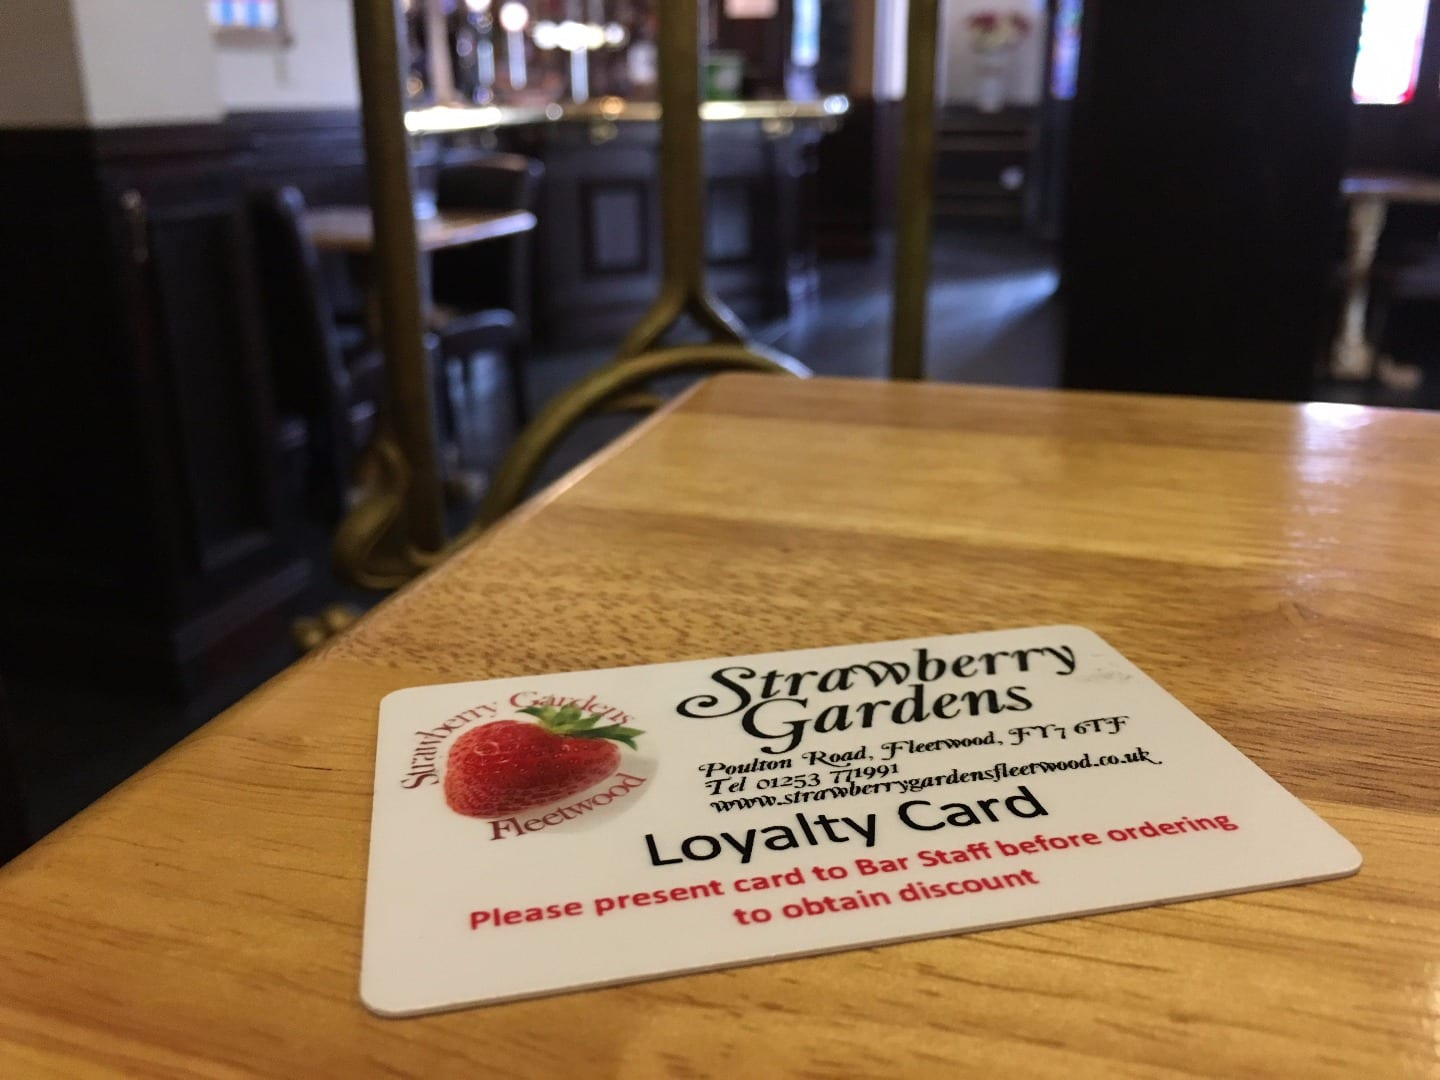 Strawberry Gardens Loyalty Card